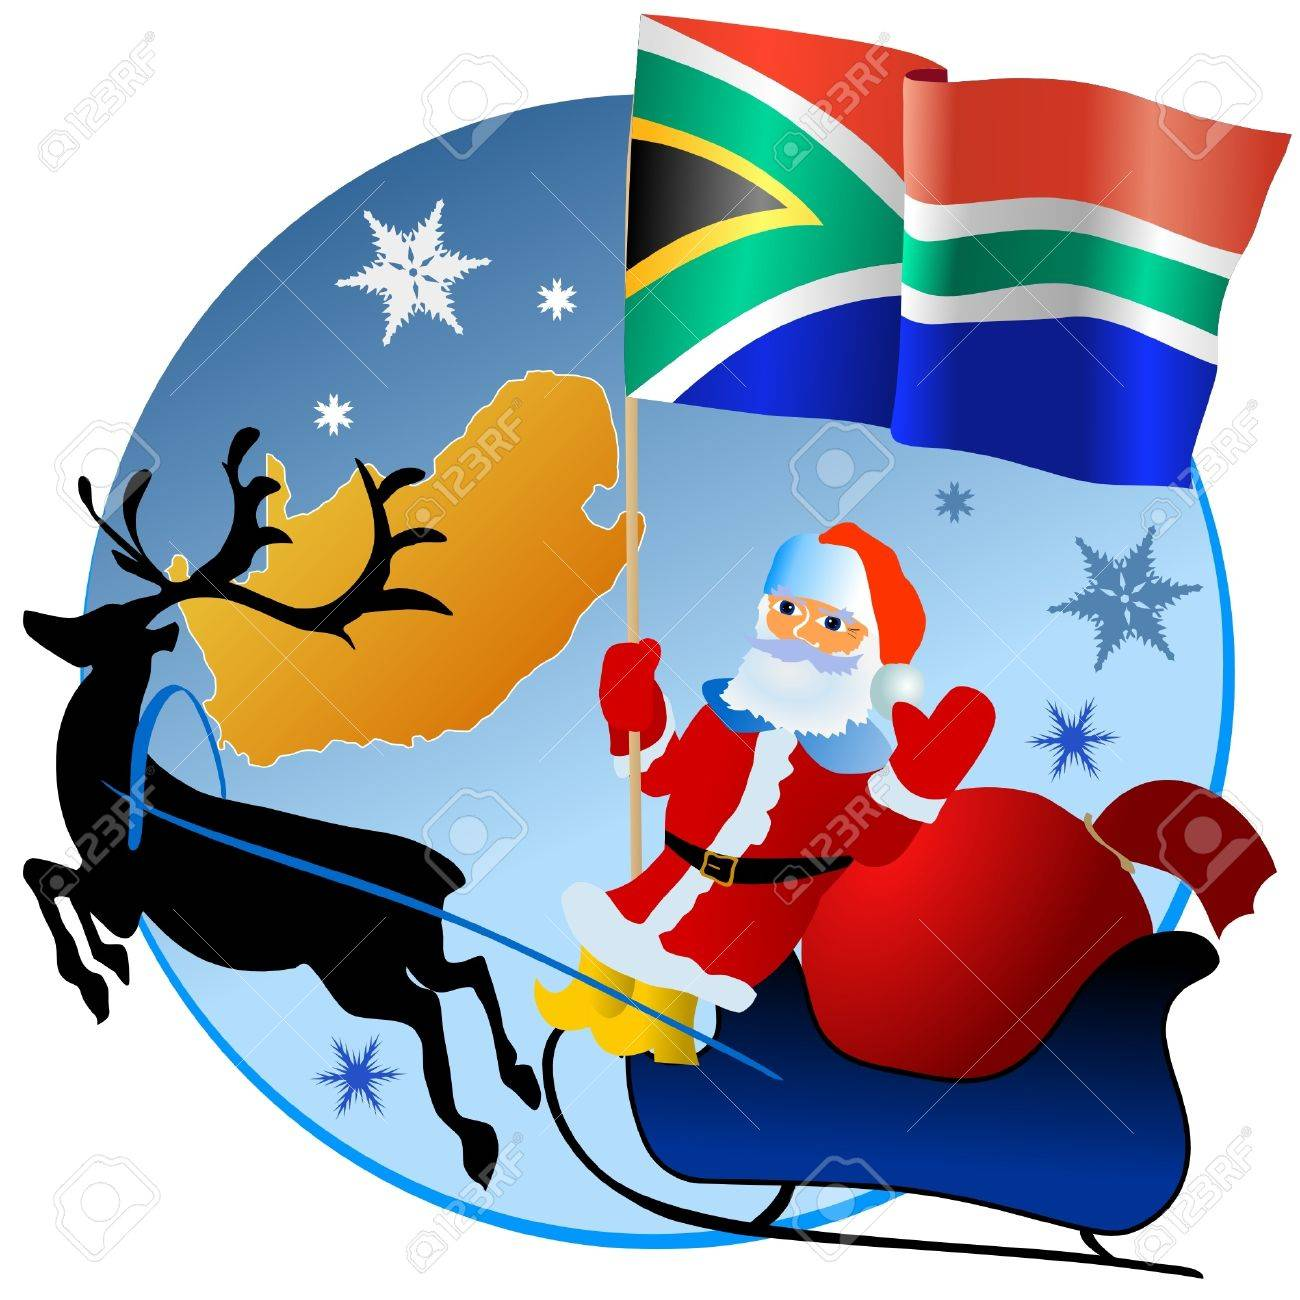 Christmas In South Africa Images.Merry Christmas South Africa